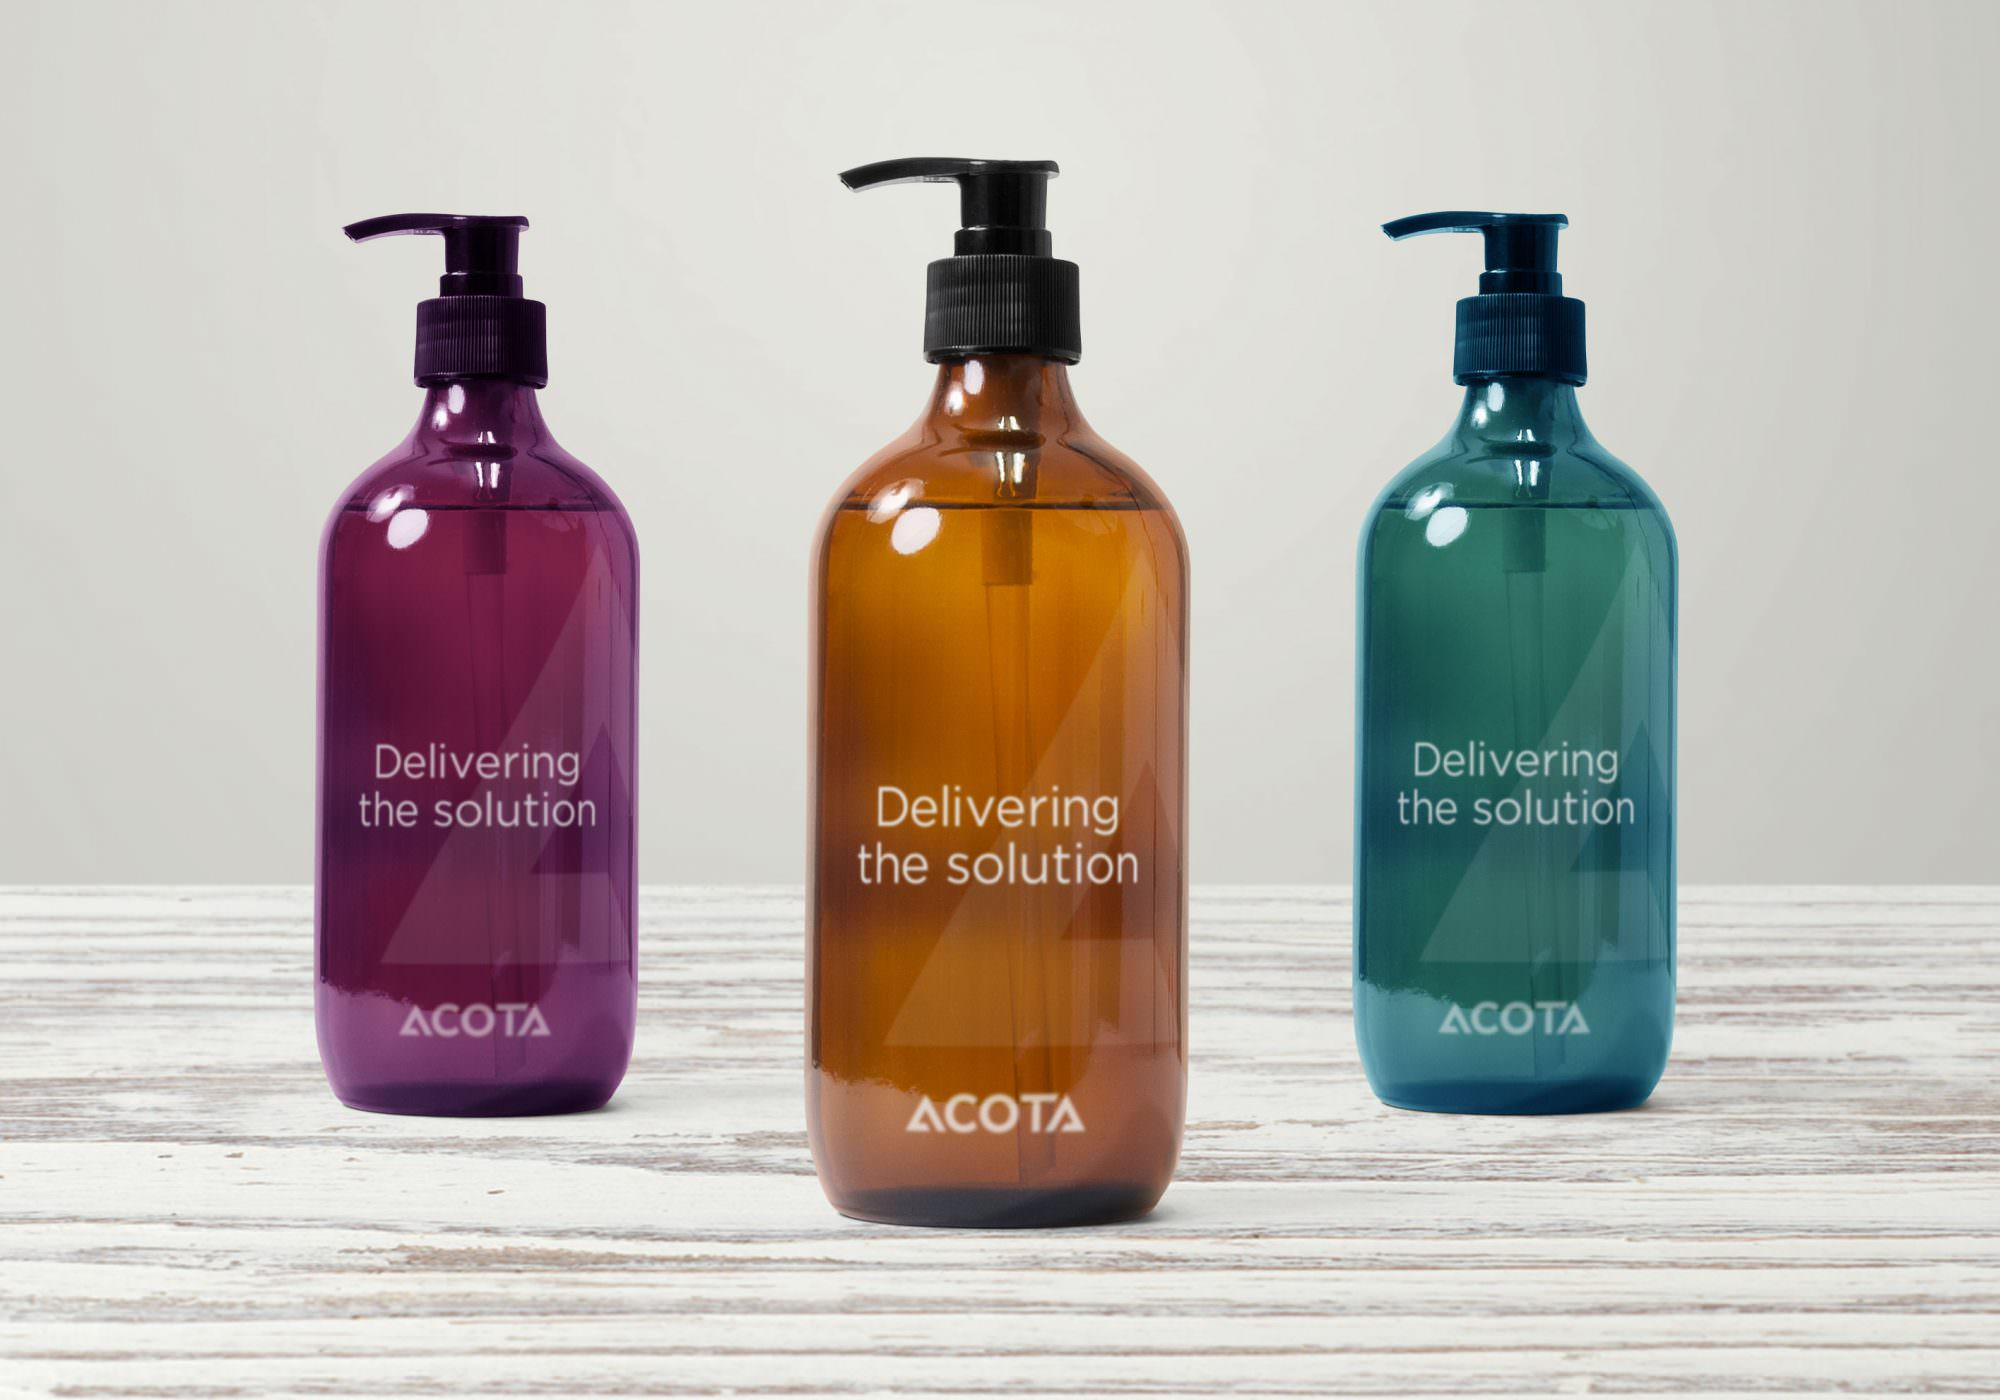 Acota – Branding & Marketing By Source In Shrewsbury, Shropshire